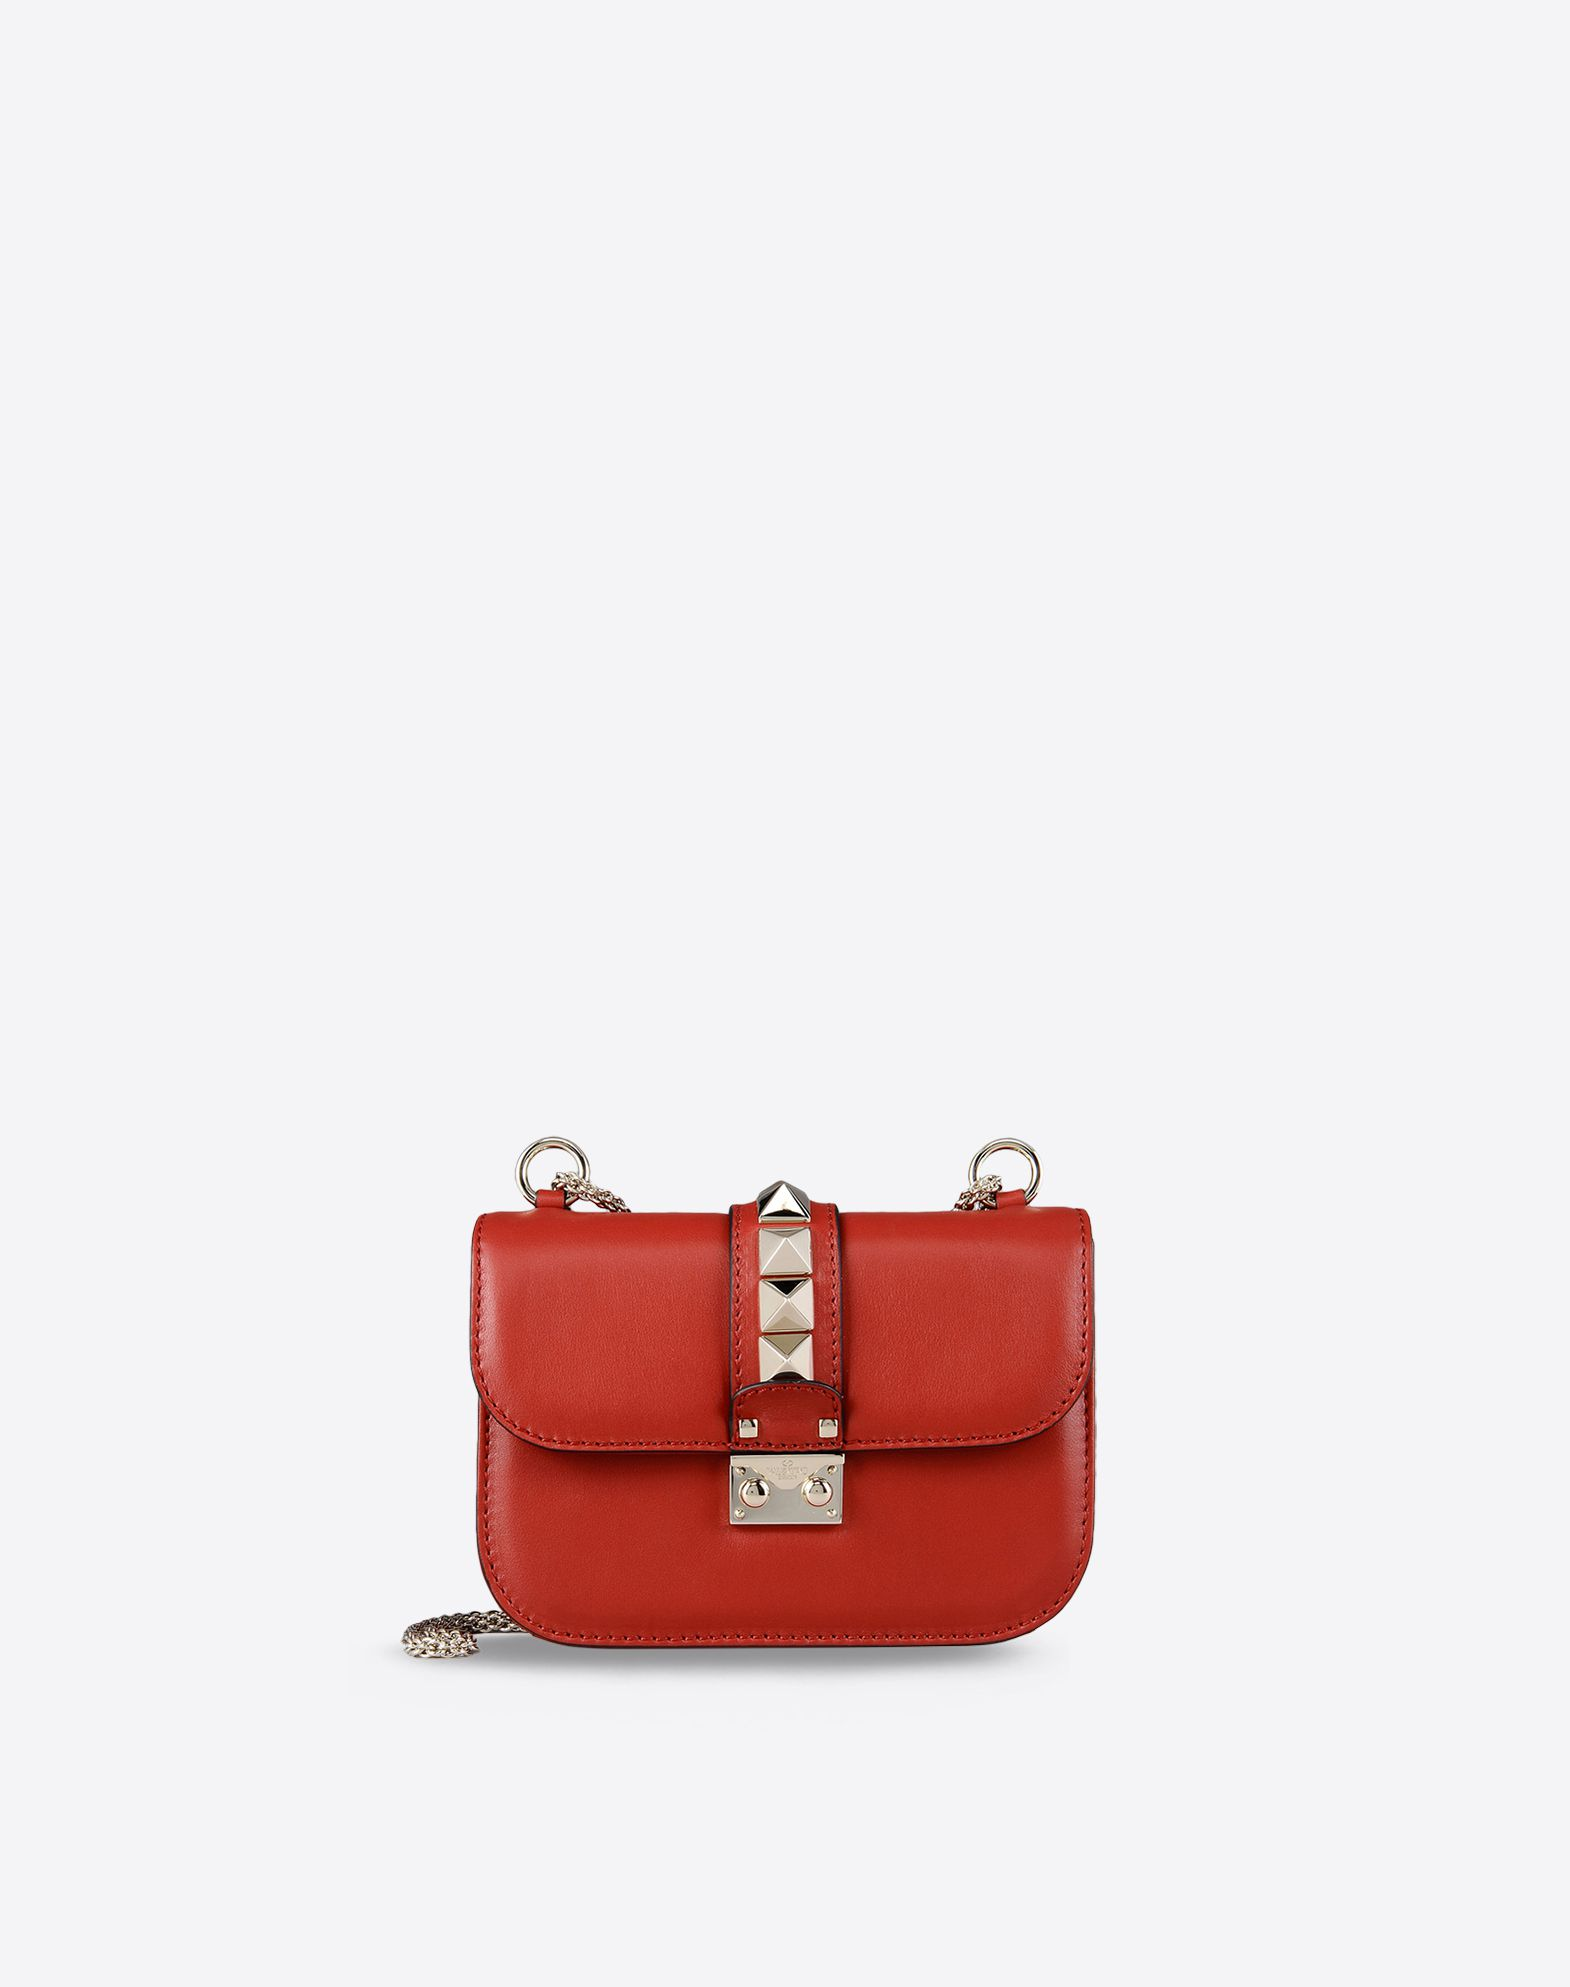 Valentino Garavani Small Chain Shoulder Bag, Shoulder Bags for ...